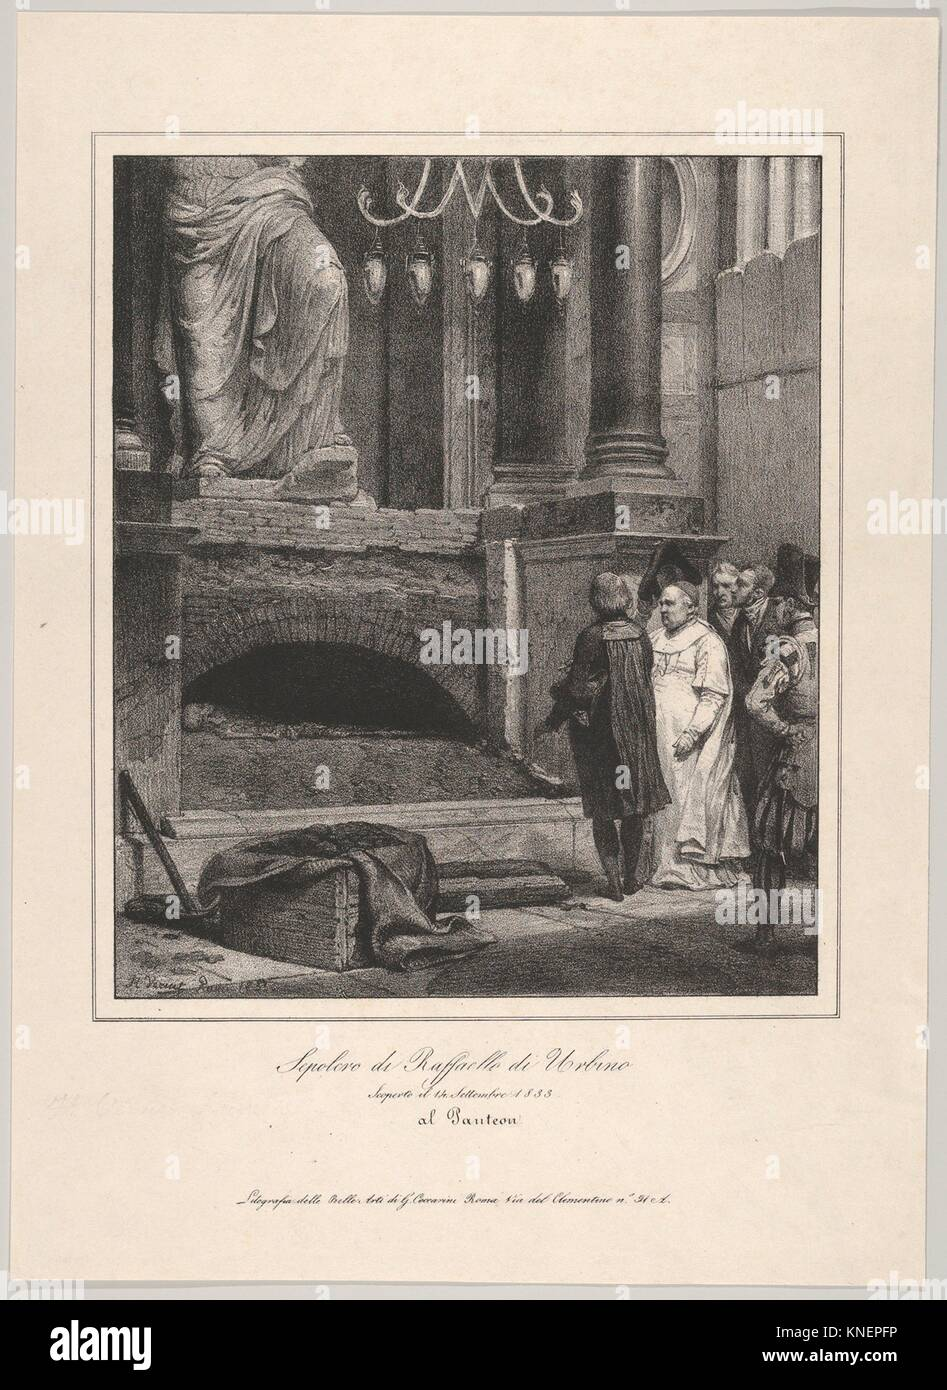 The Tomb of Raphael, Opened September 14, 1833, Pantheon, Rome. Artist: Horace Vernet (French, Paris 1789-1863 Paris); - Stock Image